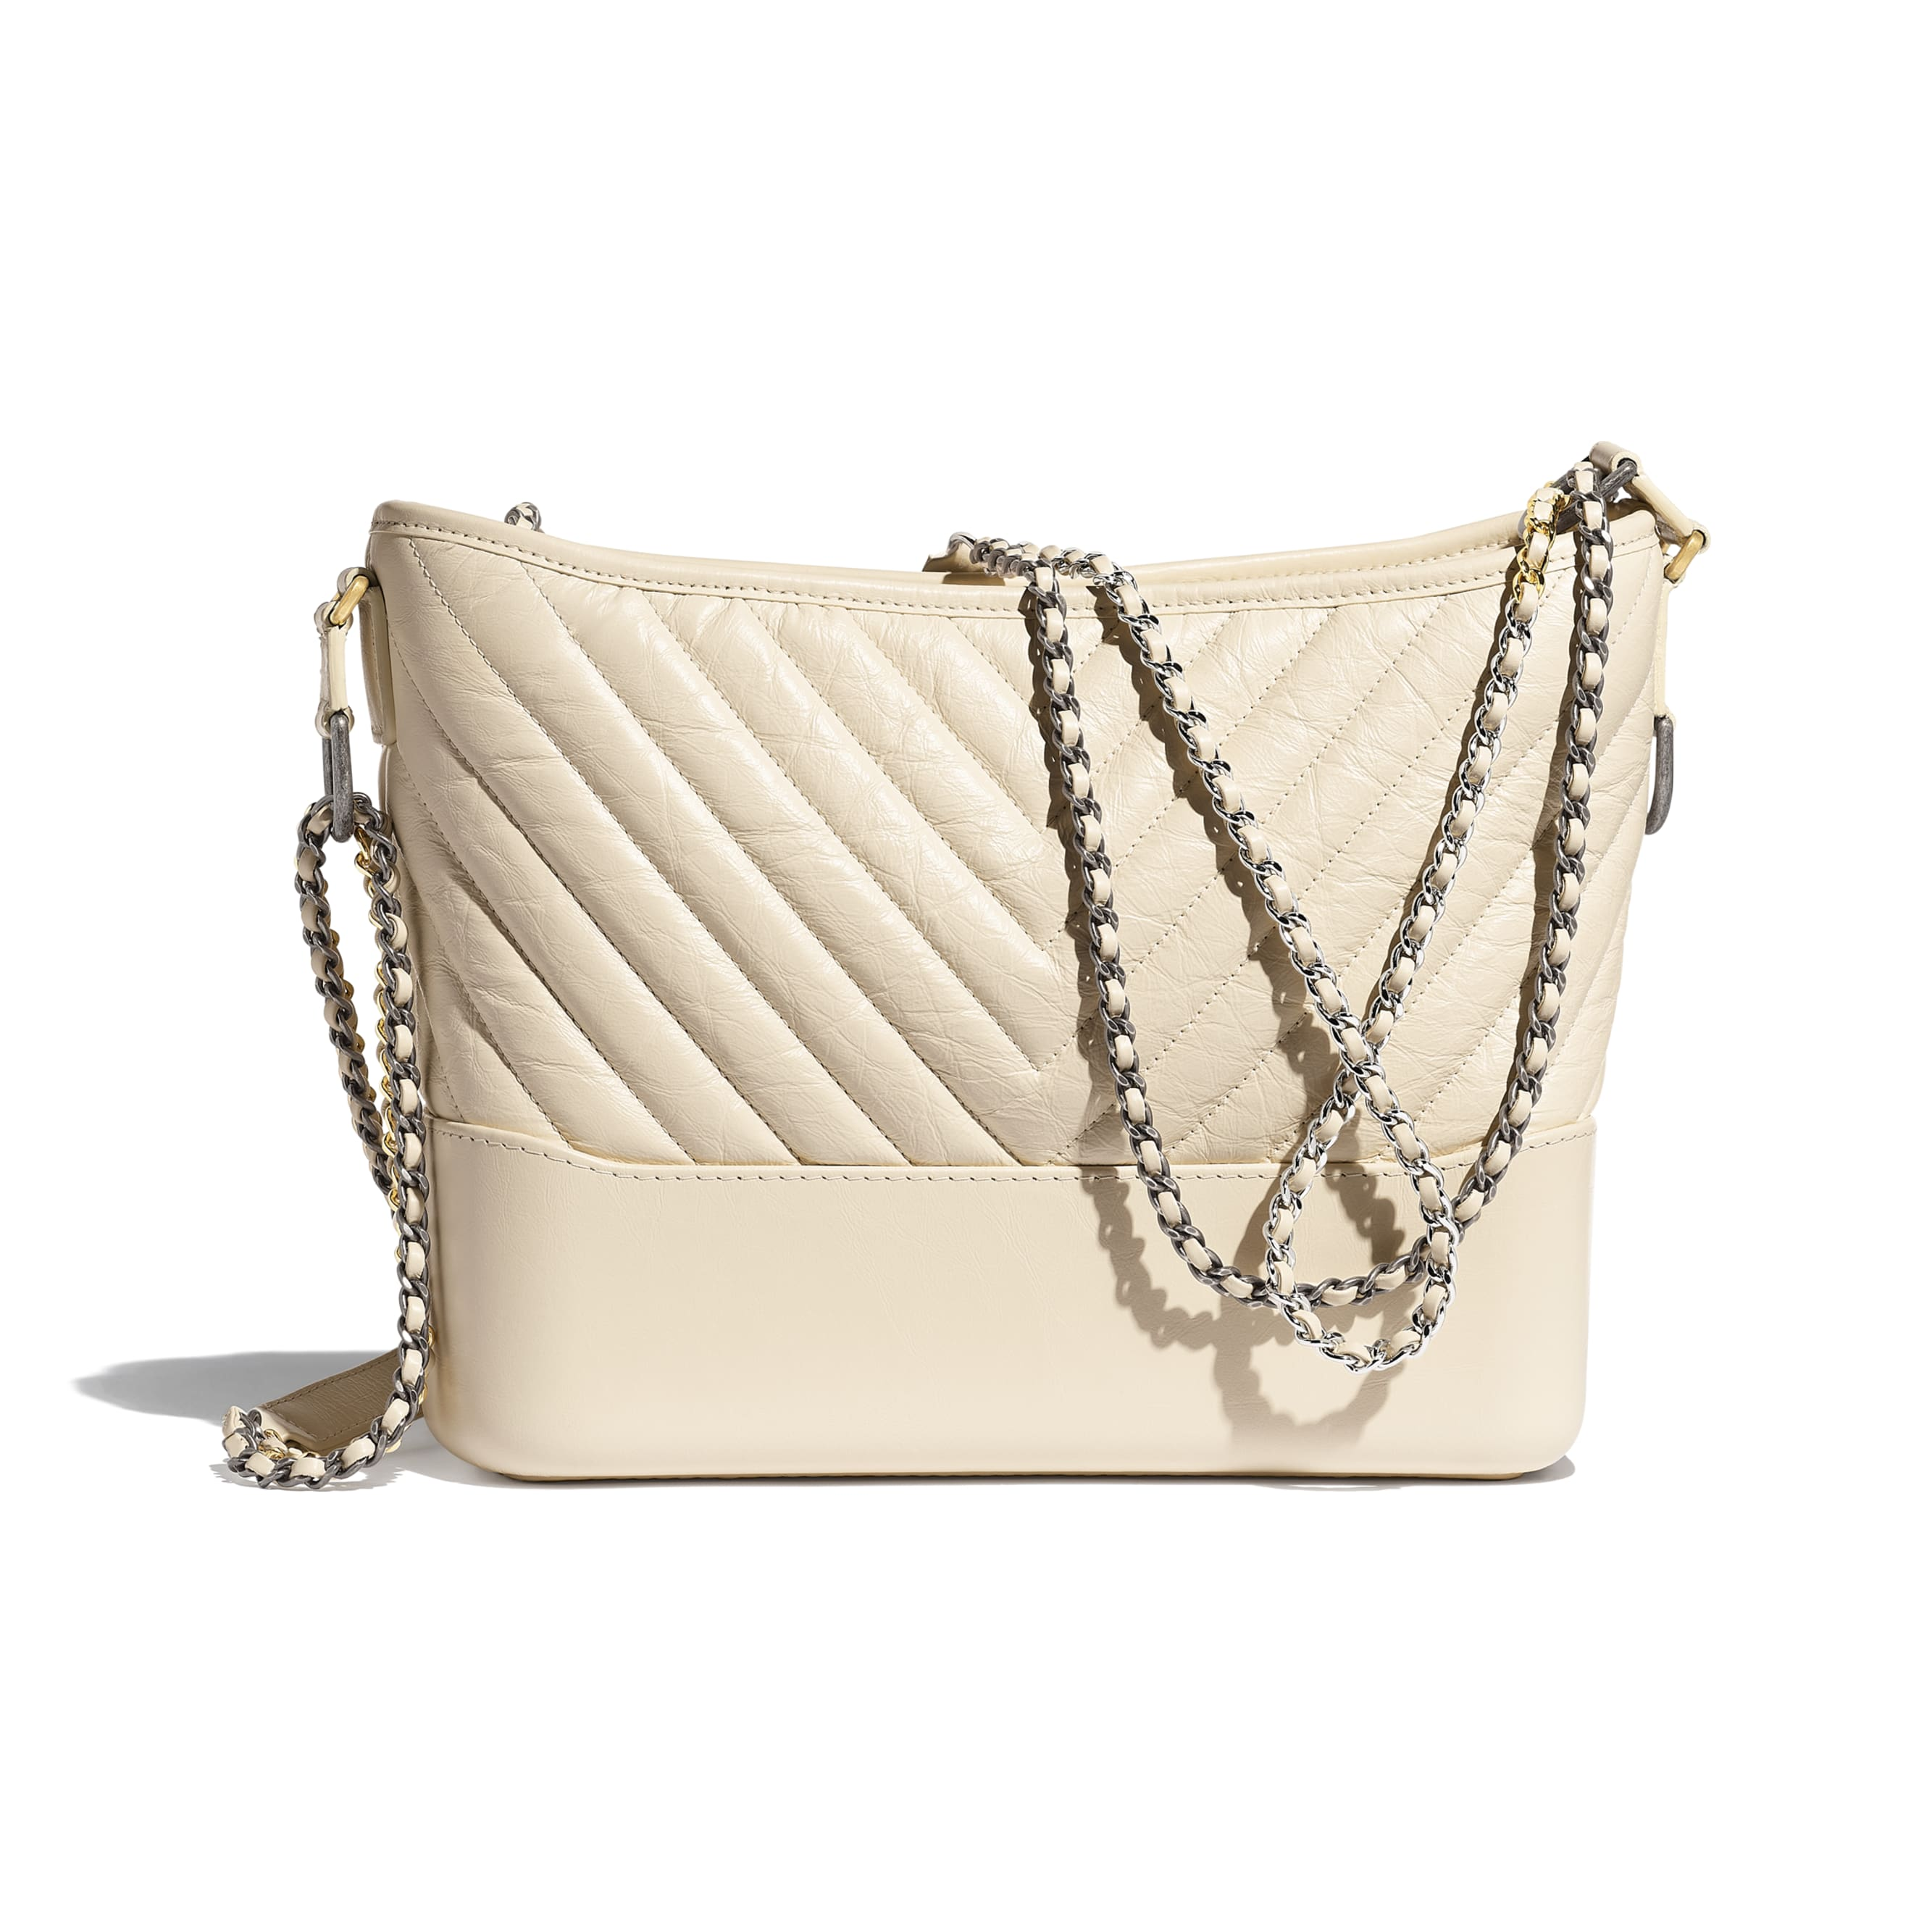 CHANEL'S GABRIELLE Large Hobo Bag - Light Beige - Aged Calfskin, Smooth Calfskin, Gold-Tone & Silver-Tone Metal - CHANEL - Alternative view - see standard sized version